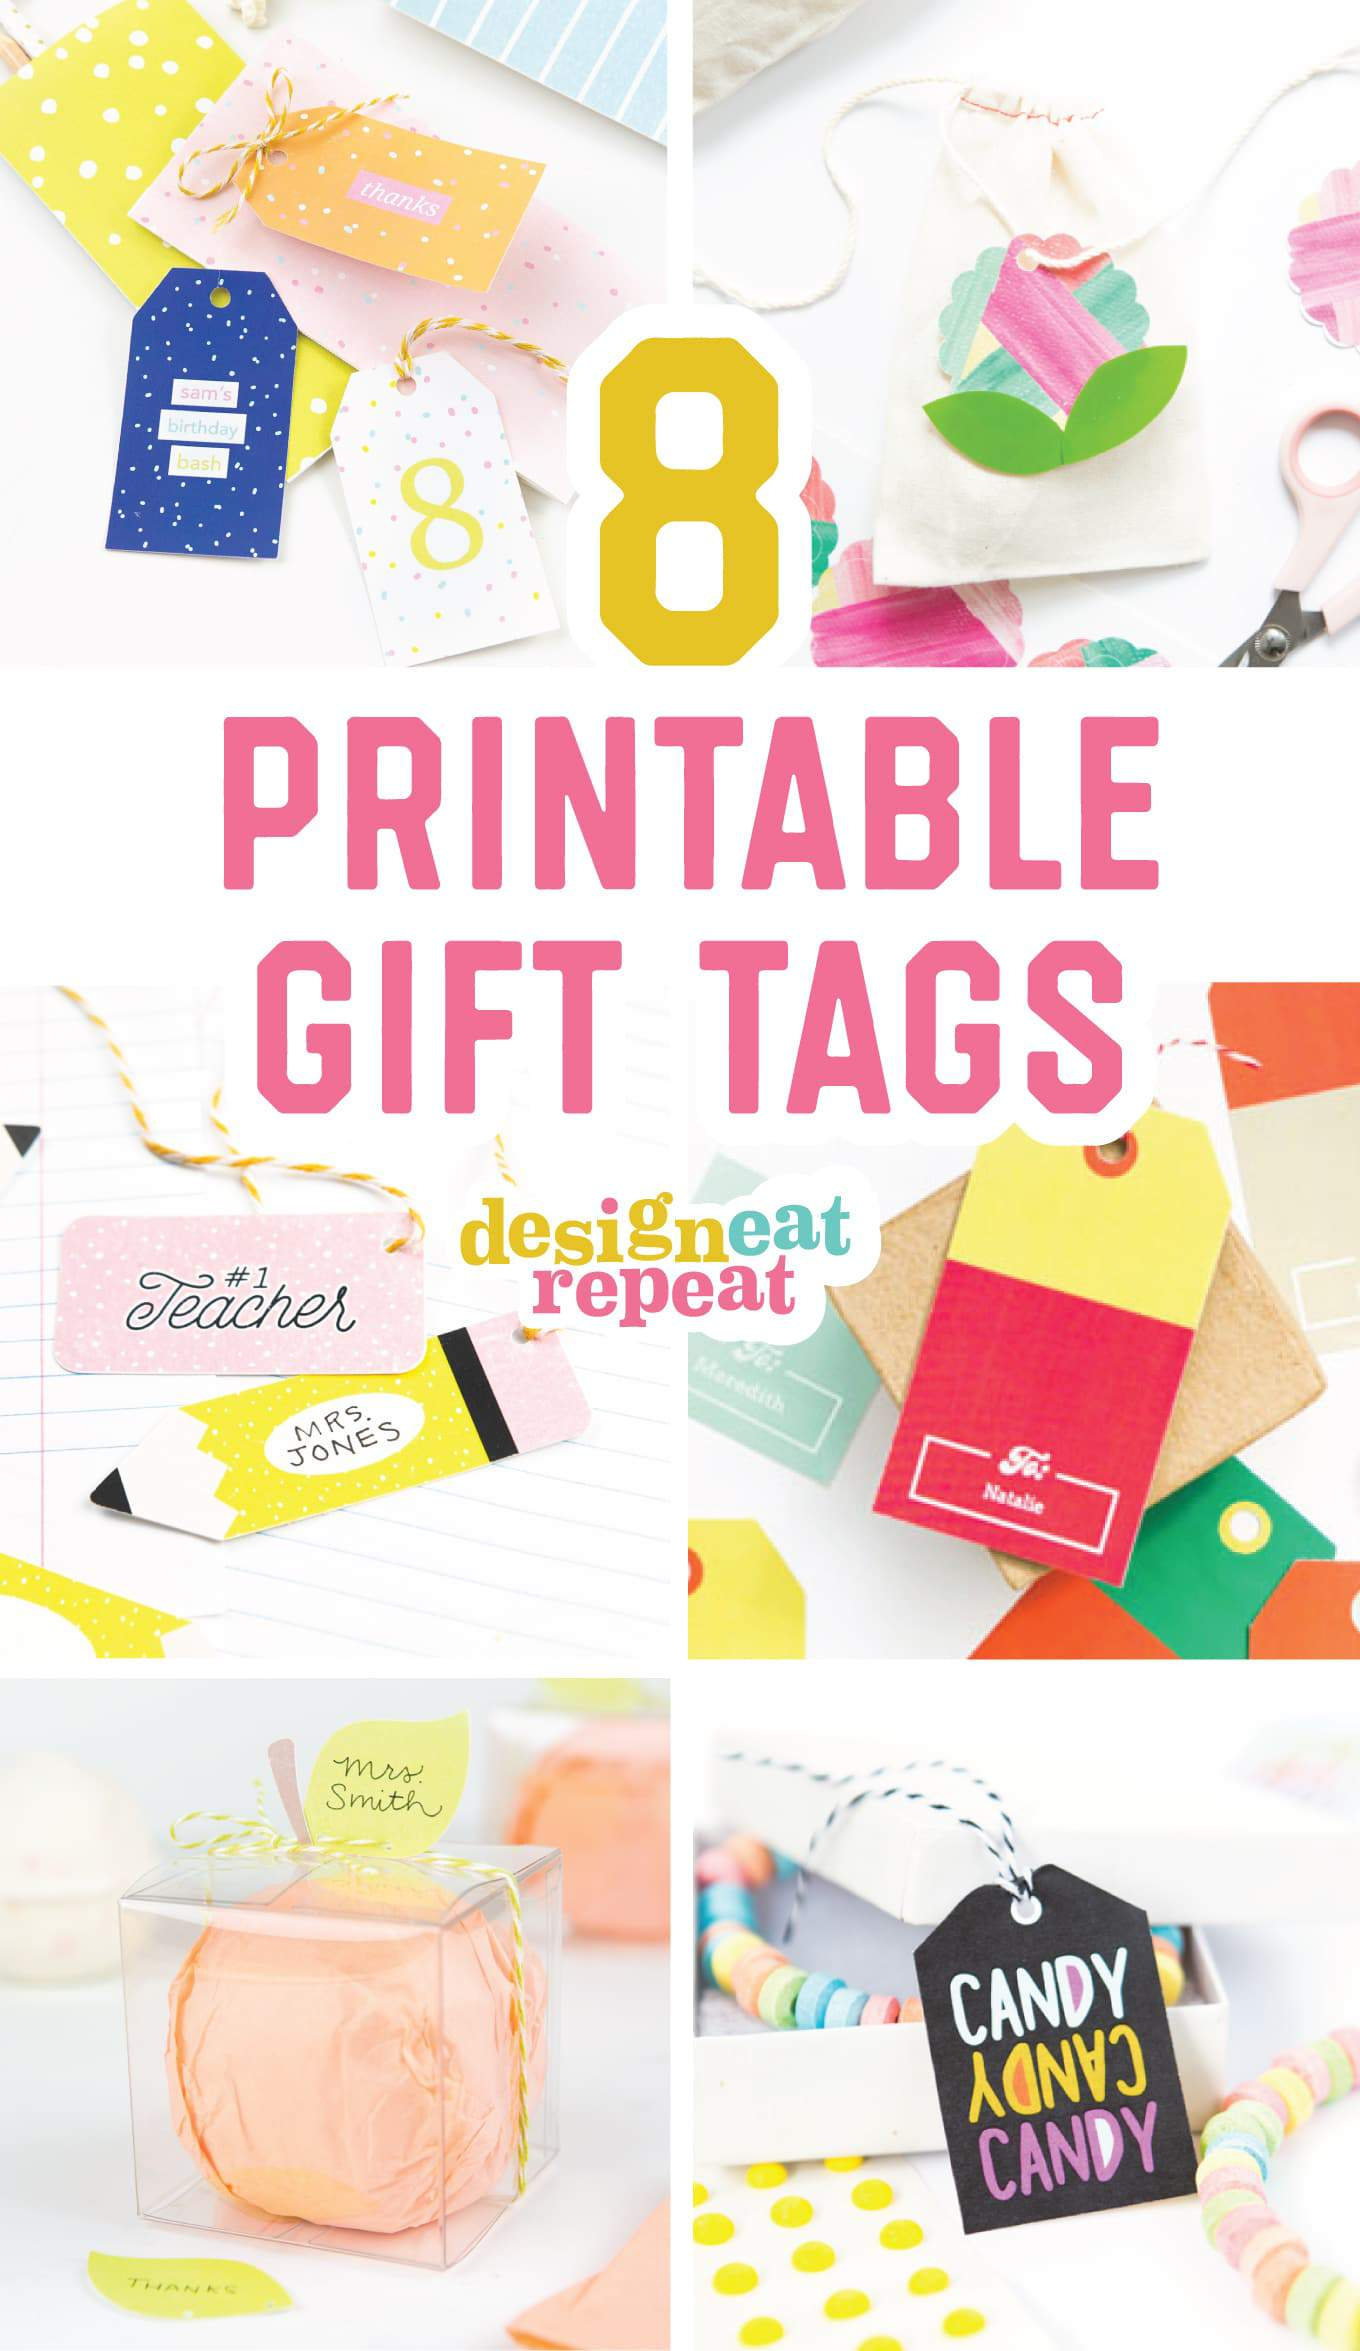 8 Colorful & Free Printable Gift Tags For Any Occasion! - Free Printable Gift Tags Personalized